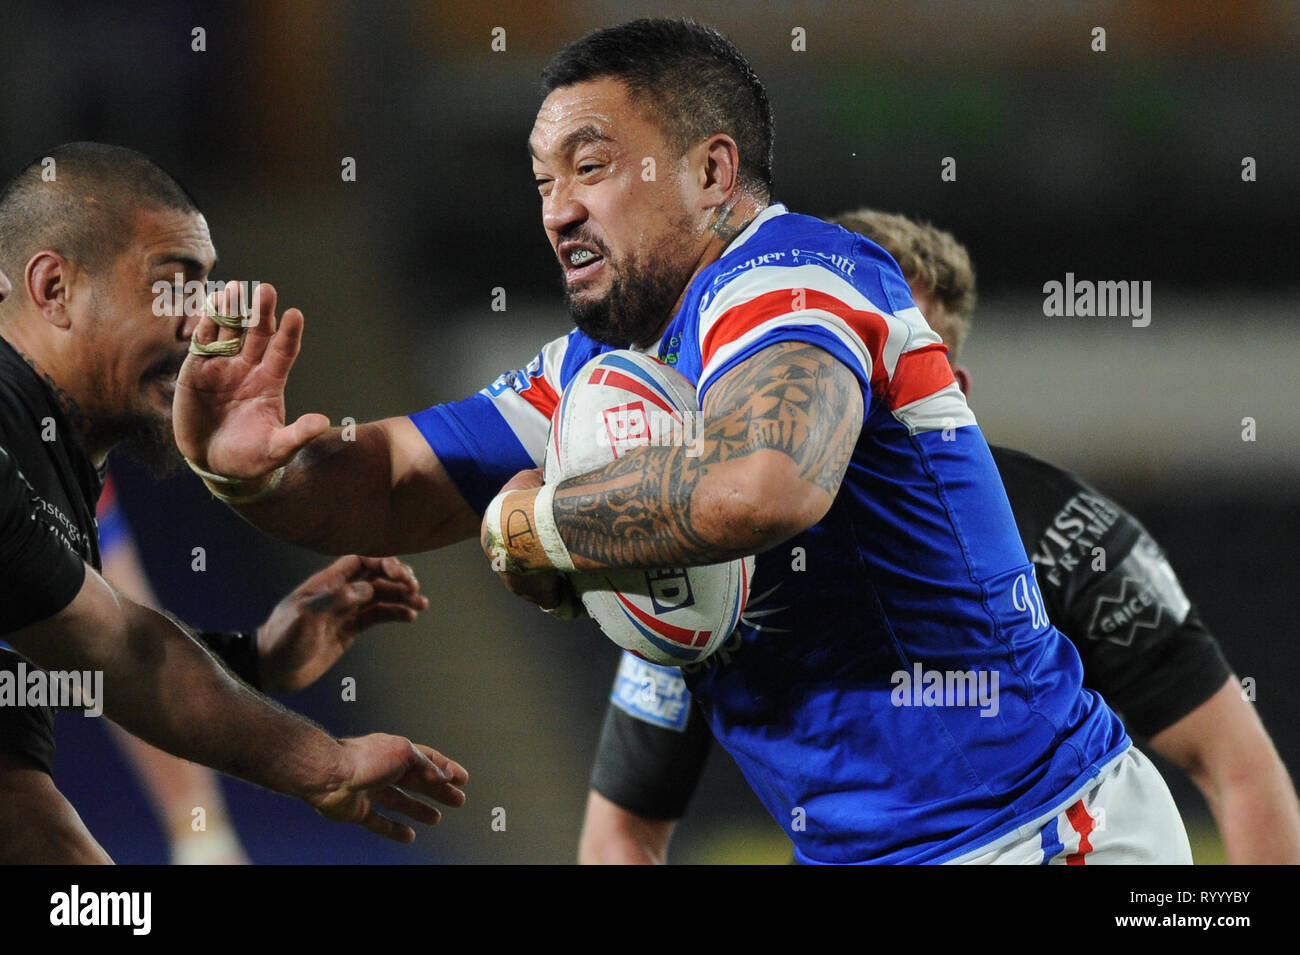 Hull, UK, 15 3 2019. 15 March 2019. KCOM Stadium, Hull, England; Rugby League Betfred Super League, Hull FC vs Wakefield Trinity; Tinirau Arona fends off the Hull FC defence.  Dean Williams Credit: Dean Williams/Alamy Live News Stock Photo